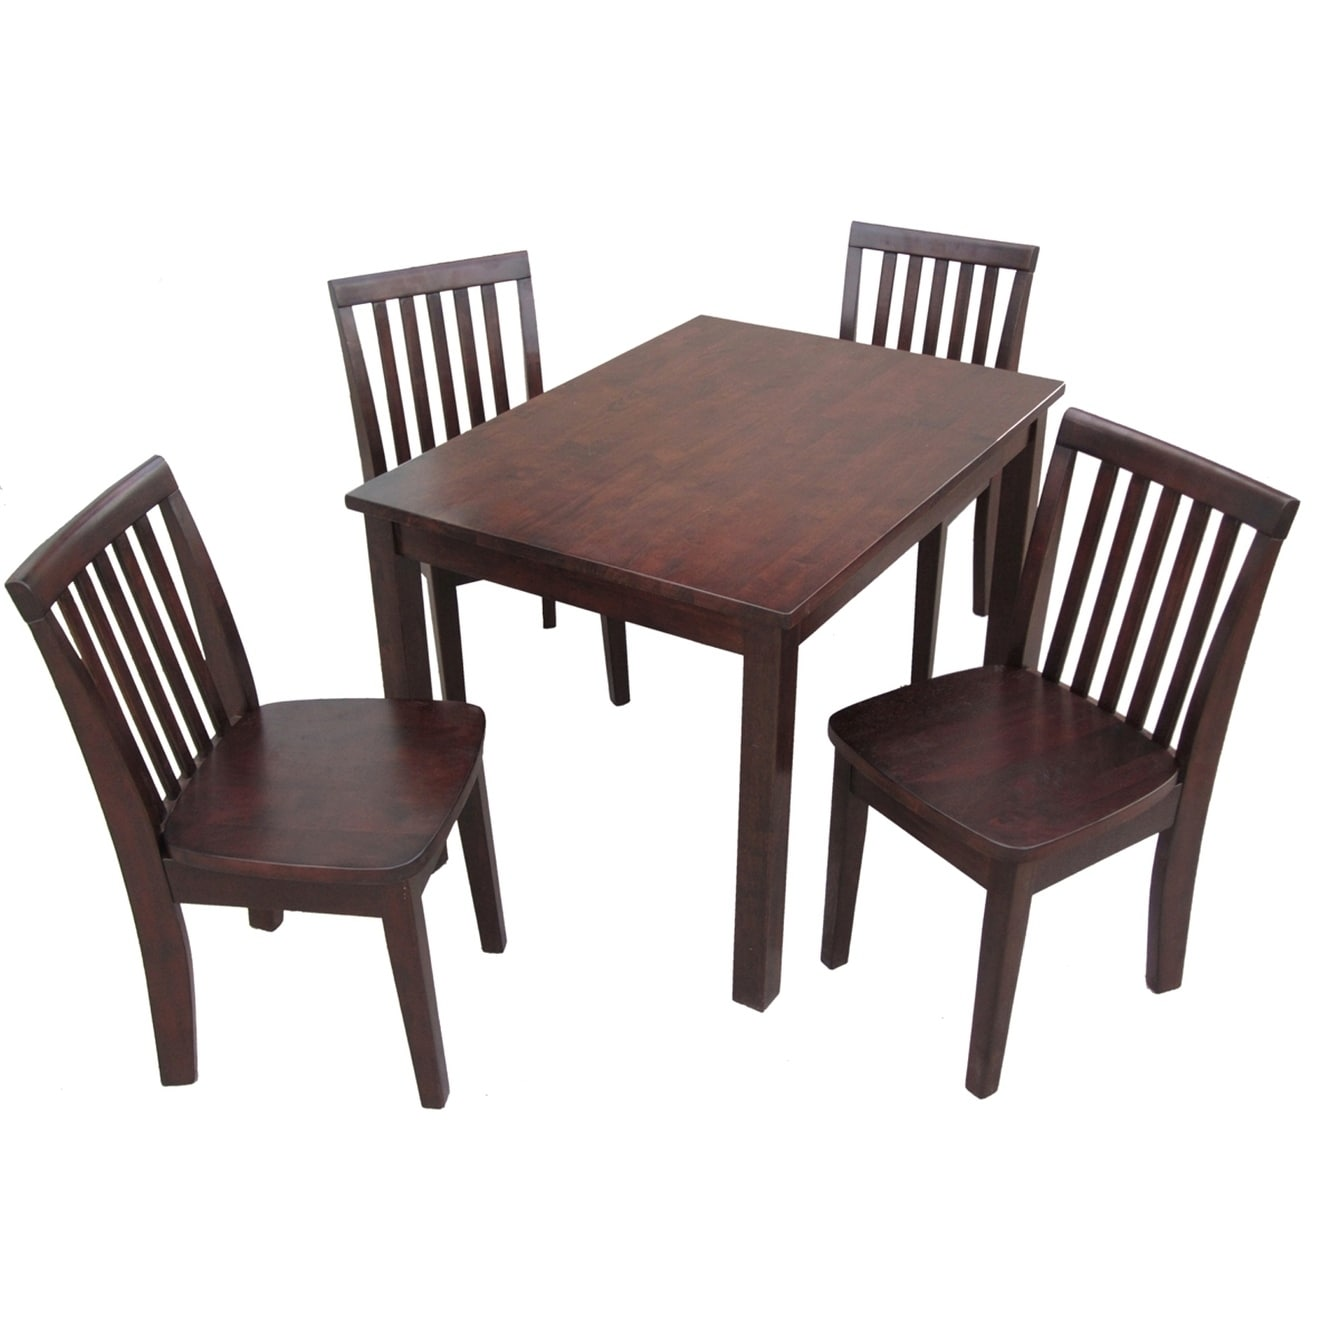 91e039d7278e9 Shop Juvenile Java Mission Table with Four Chairs Set - Rich Mocha - On  Sale - Free Shipping Today - Overstock - 6217397